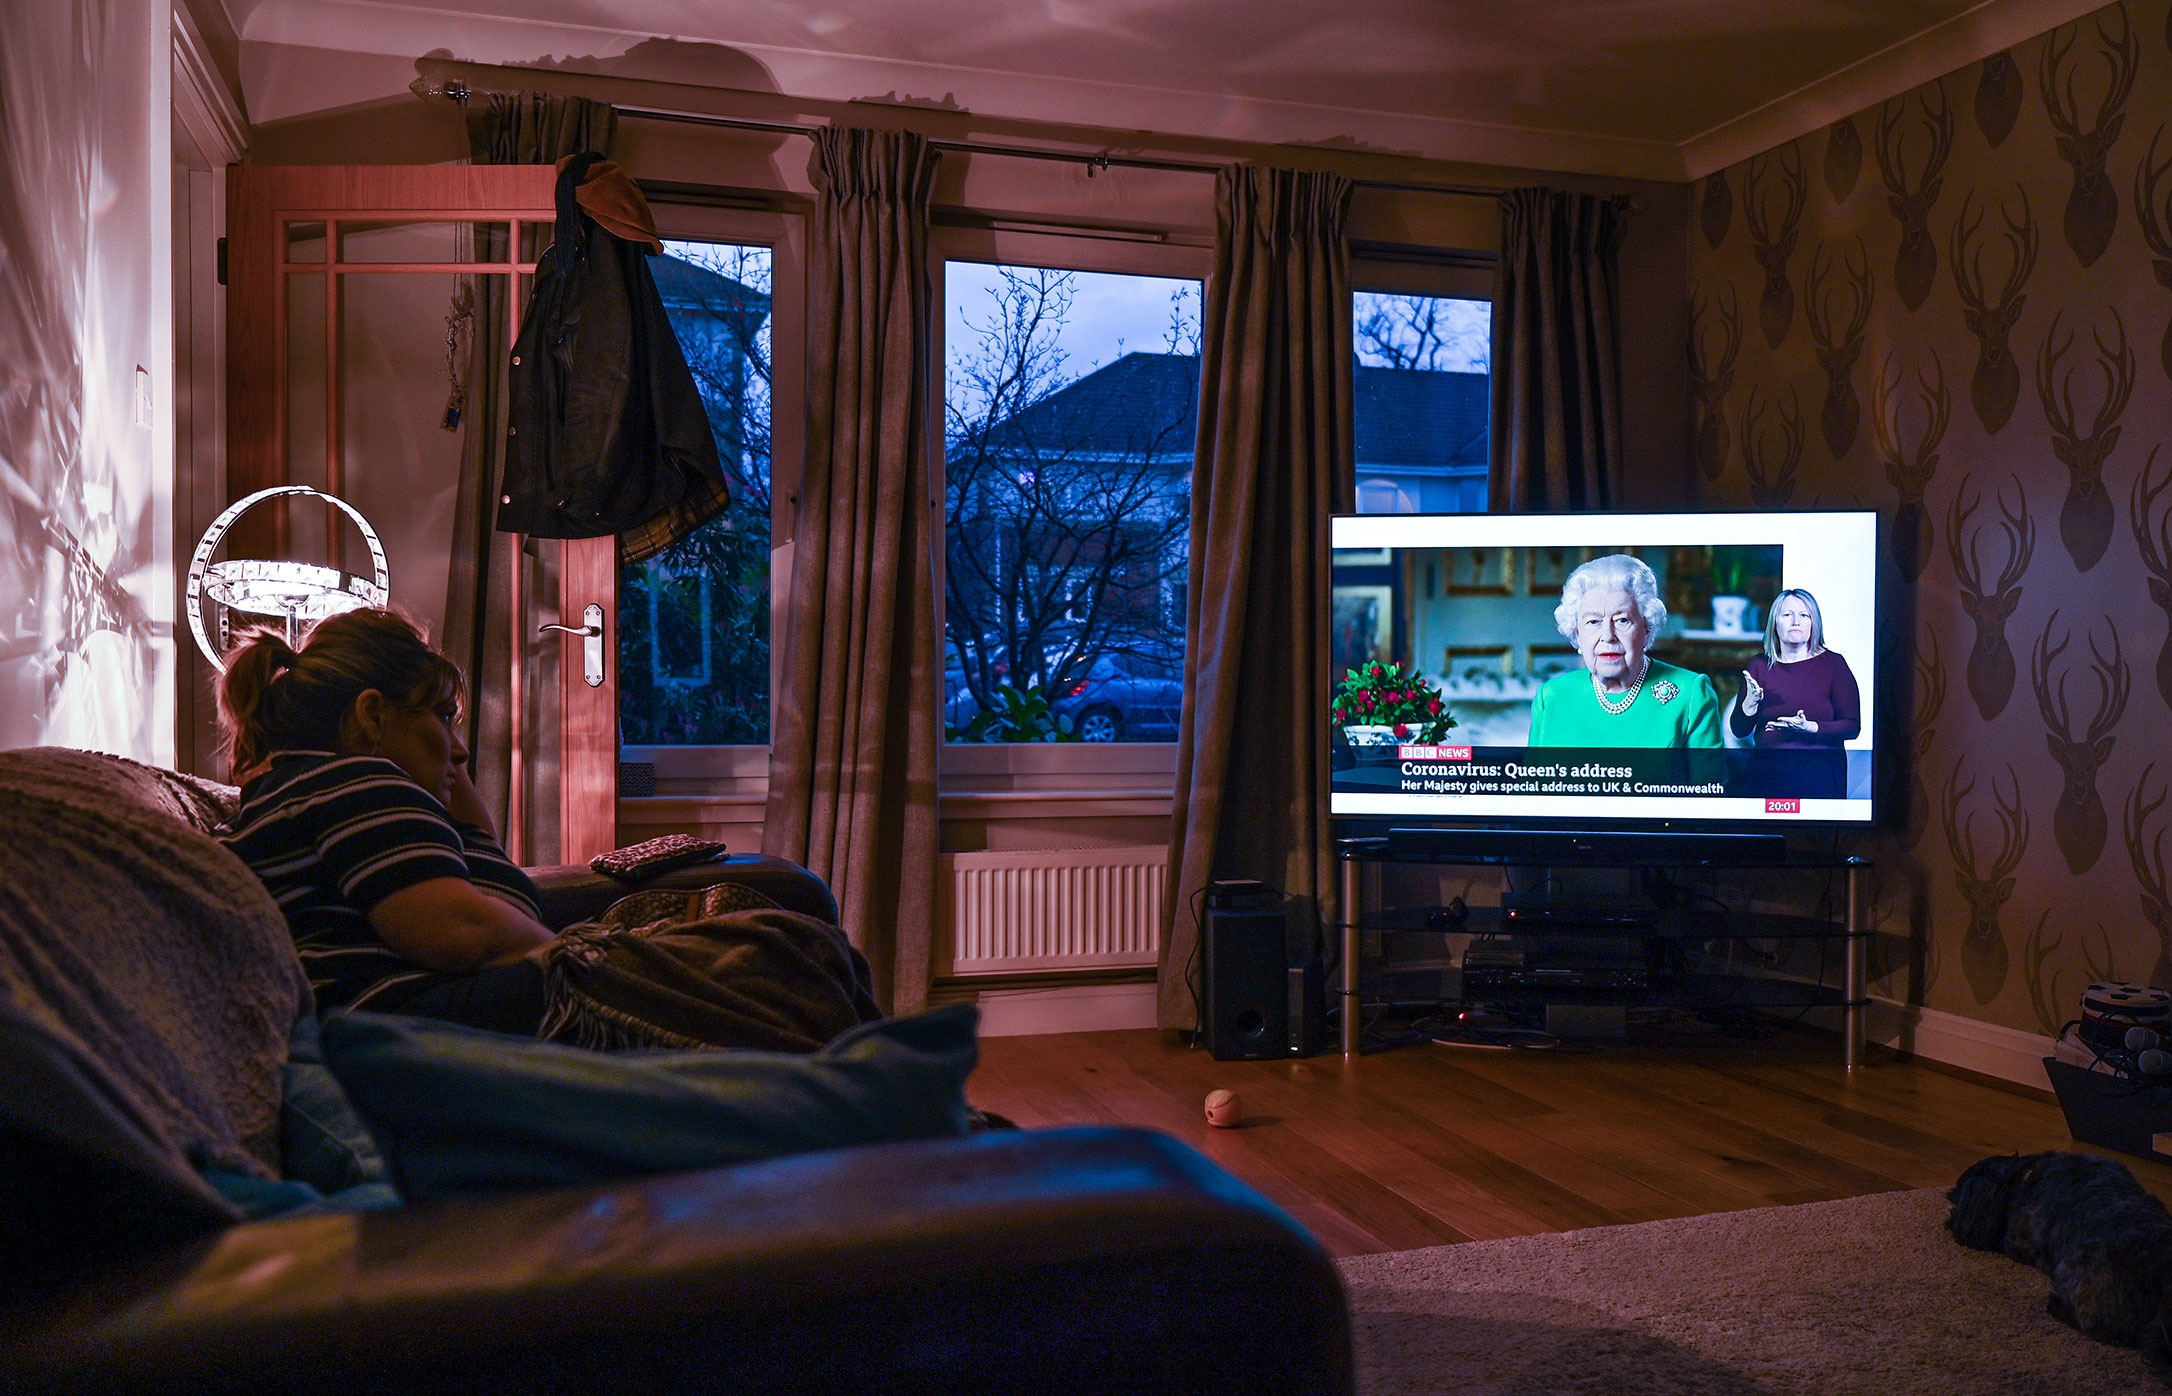 A woman watches Queen Elizabeth II's televised address to the nation on April 5, in Glasgow, Scotland.